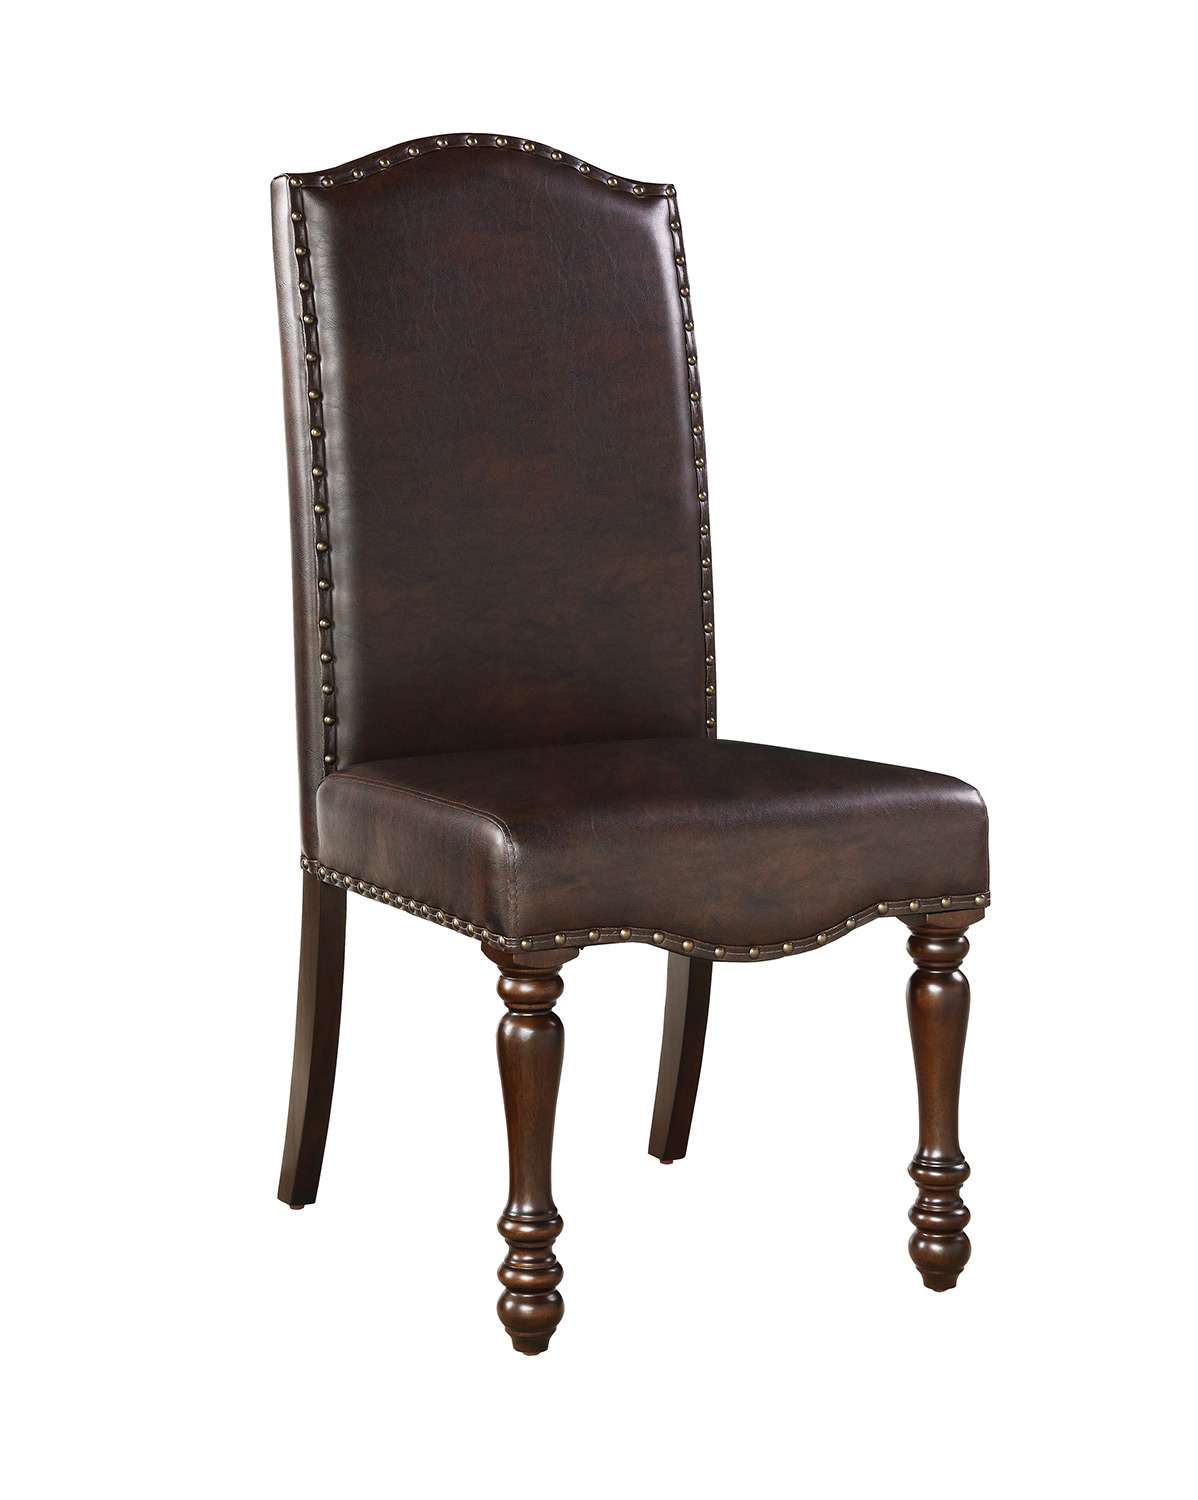 Homelegance Hargreave Side Chair - Cherry